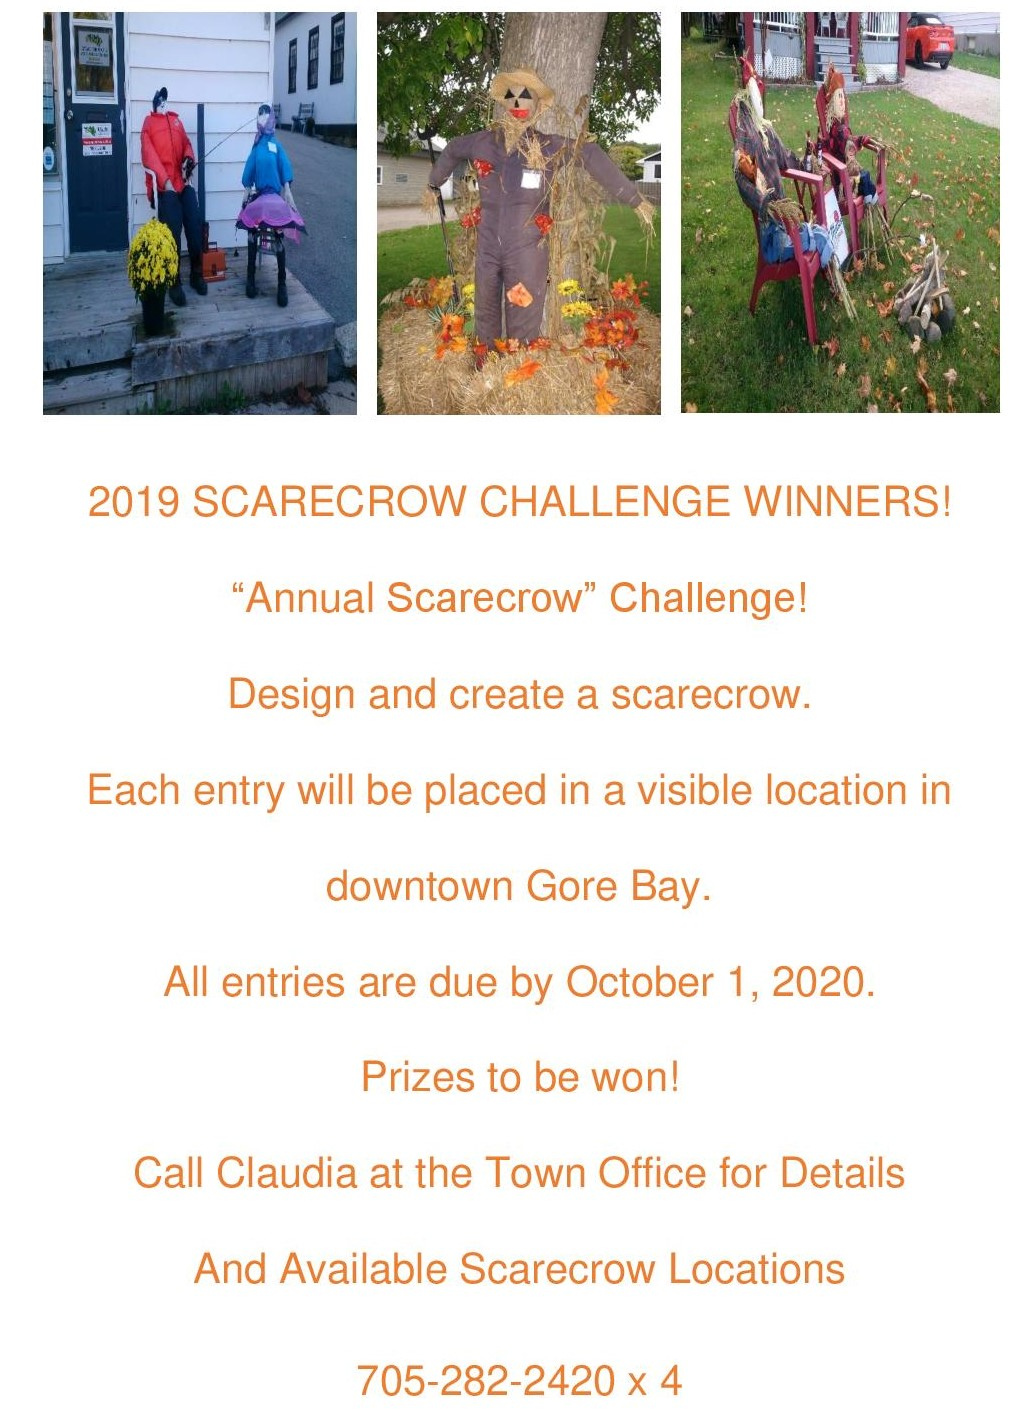 Annual Scarecrow Challenge 2020!